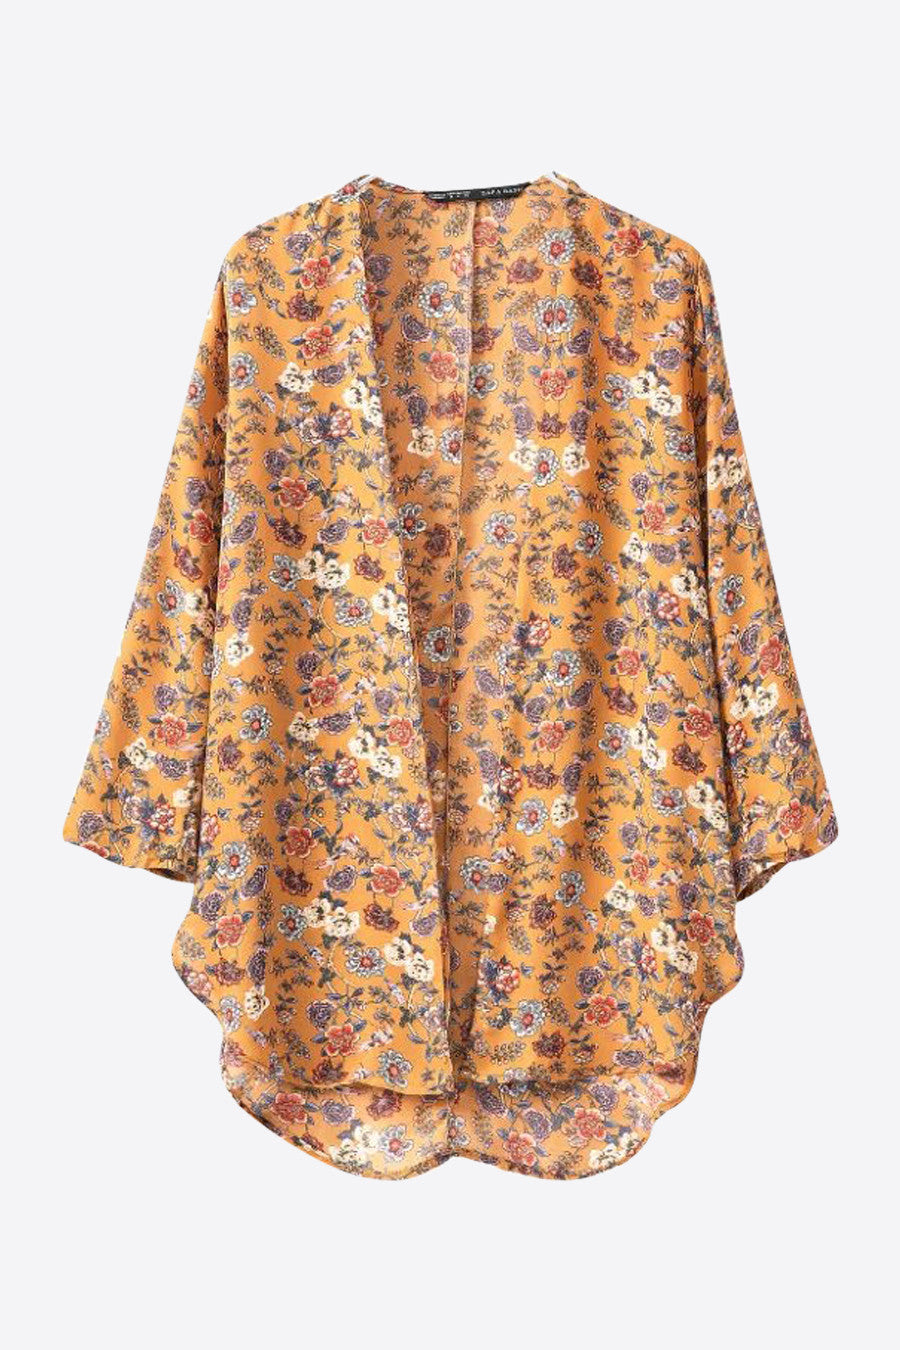 Retro Orange Flower Printed Kimono